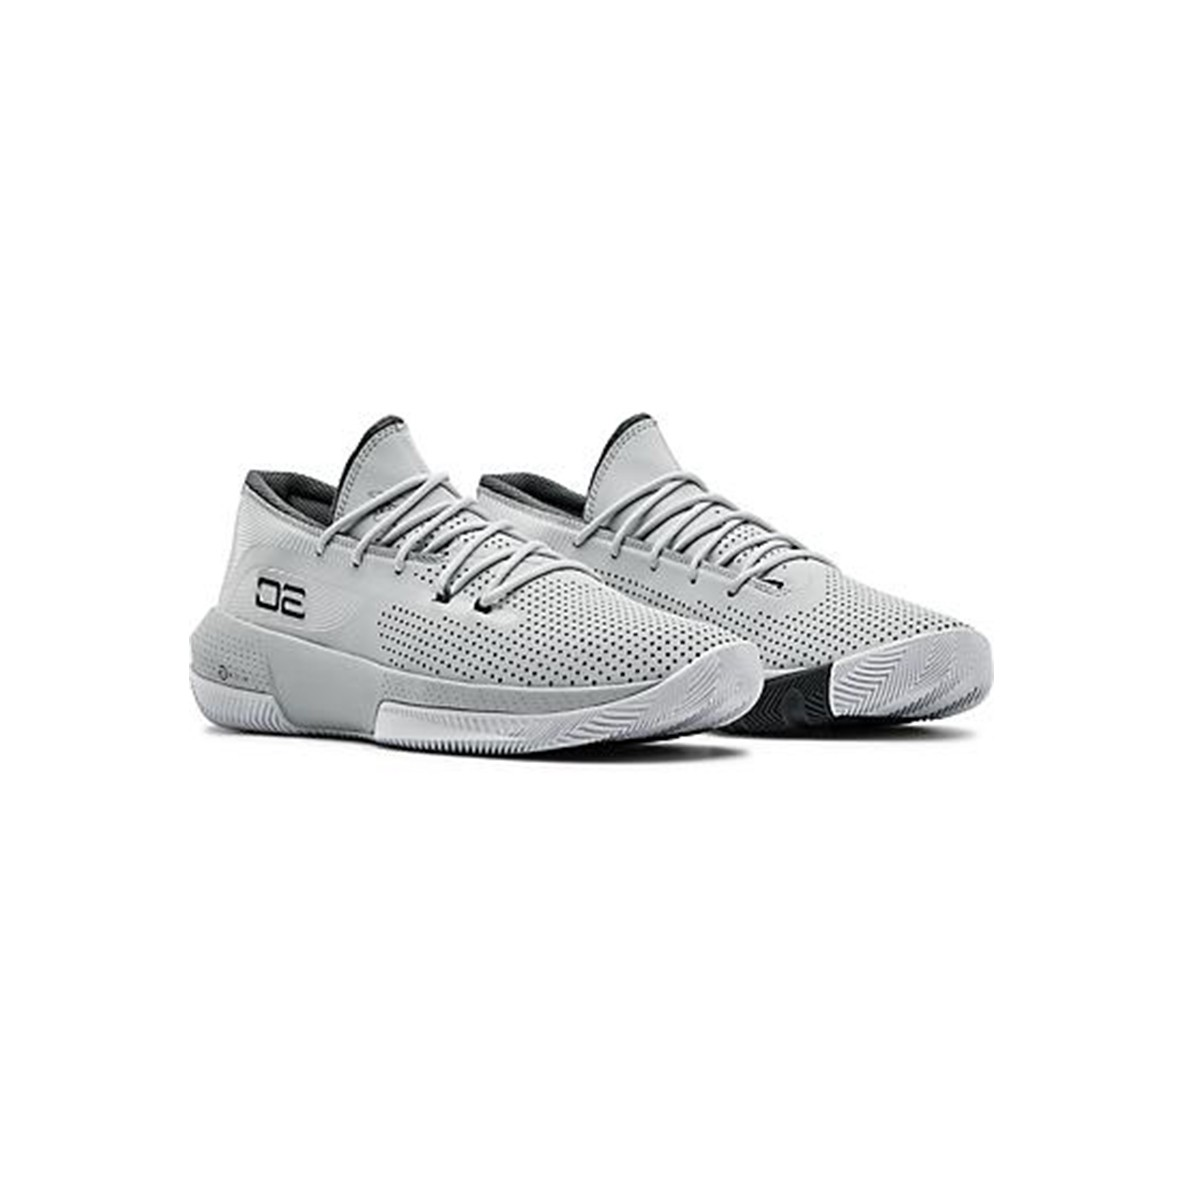 Under Armour SC 3ZER0 III 'Light Grey'-3022048-103